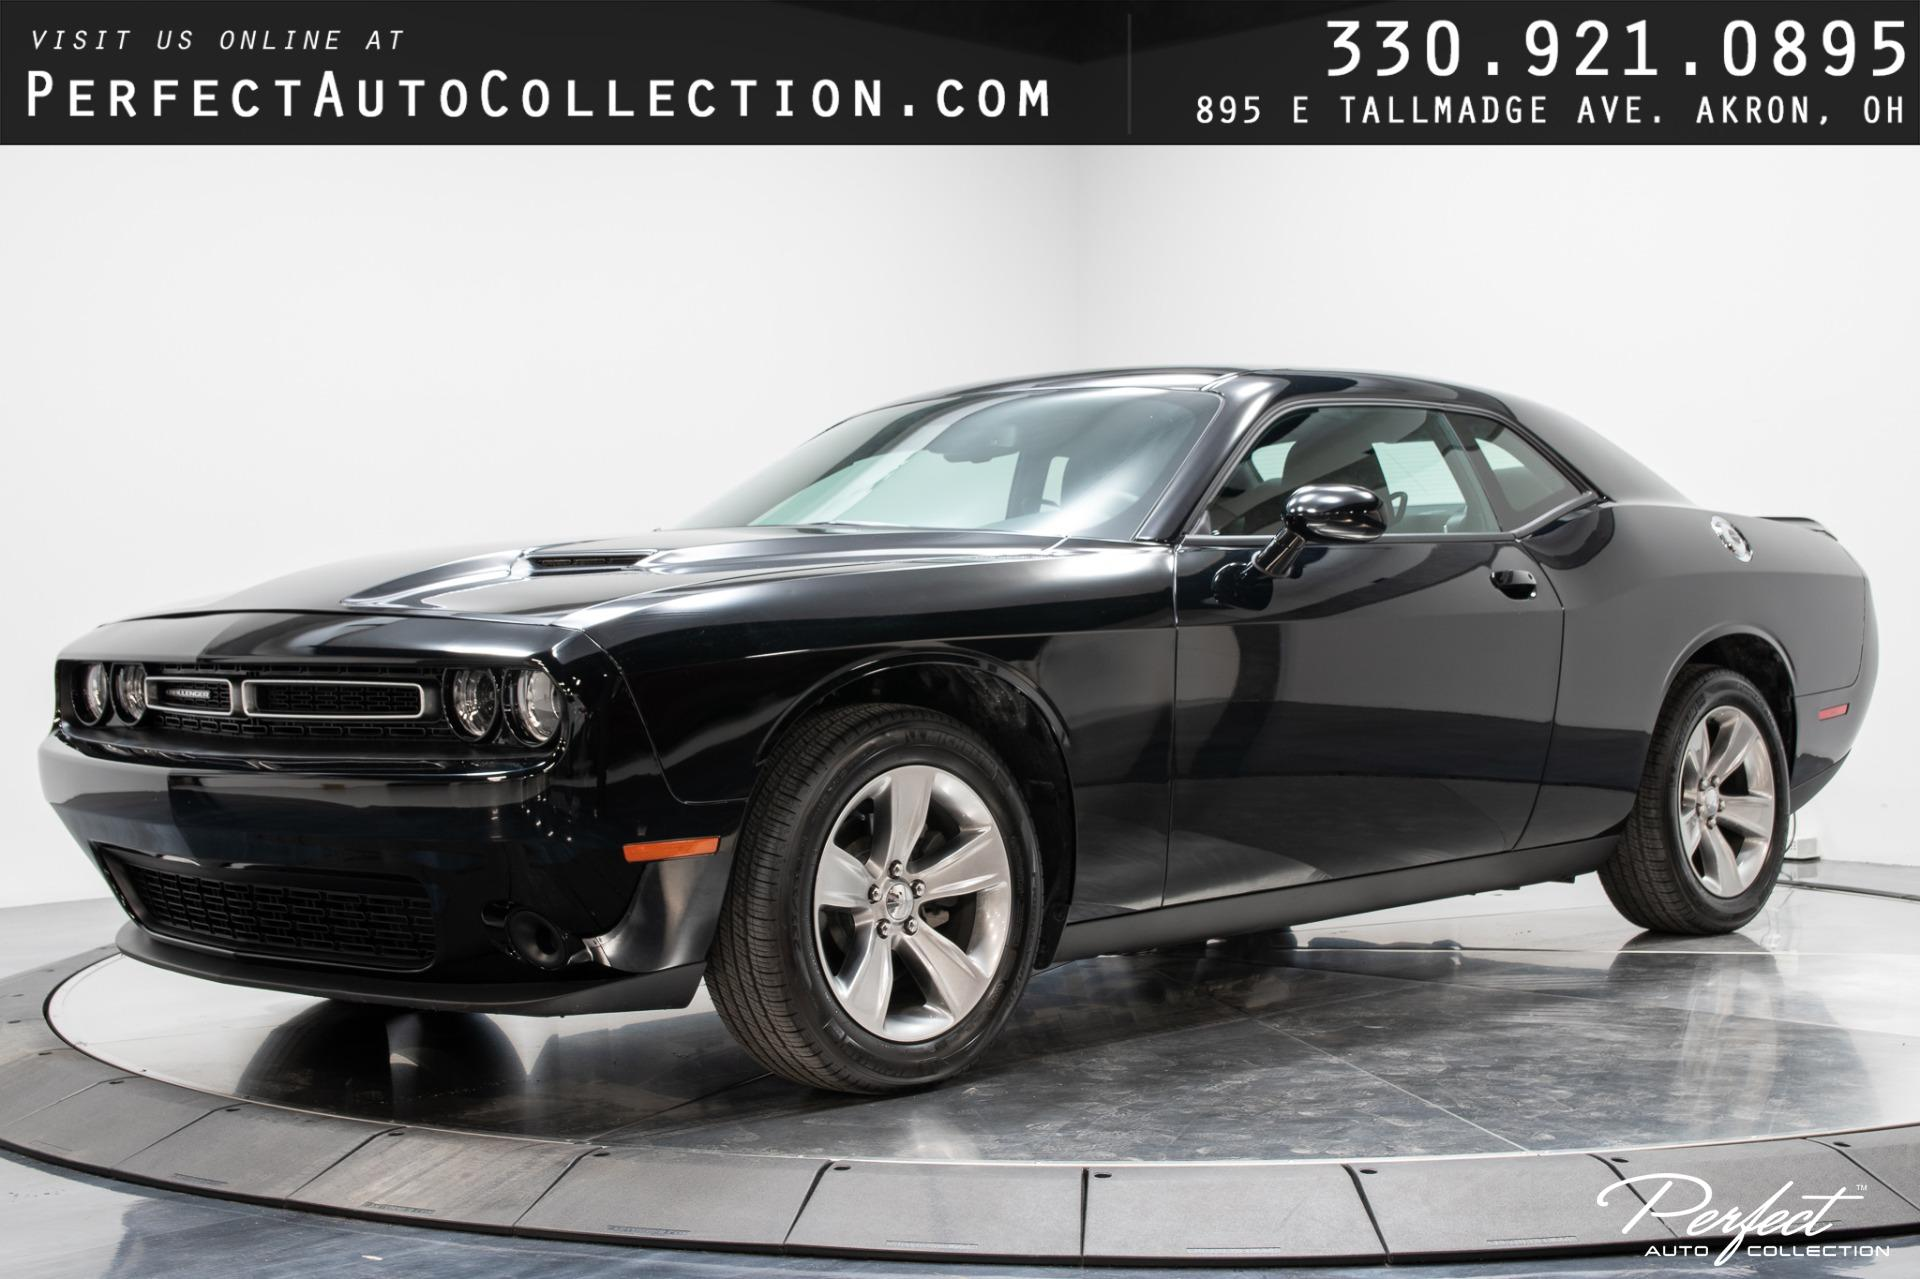 Used 2020 Dodge Challenger SXT for sale $26,395 at Perfect Auto Collection in Akron OH 44310 1